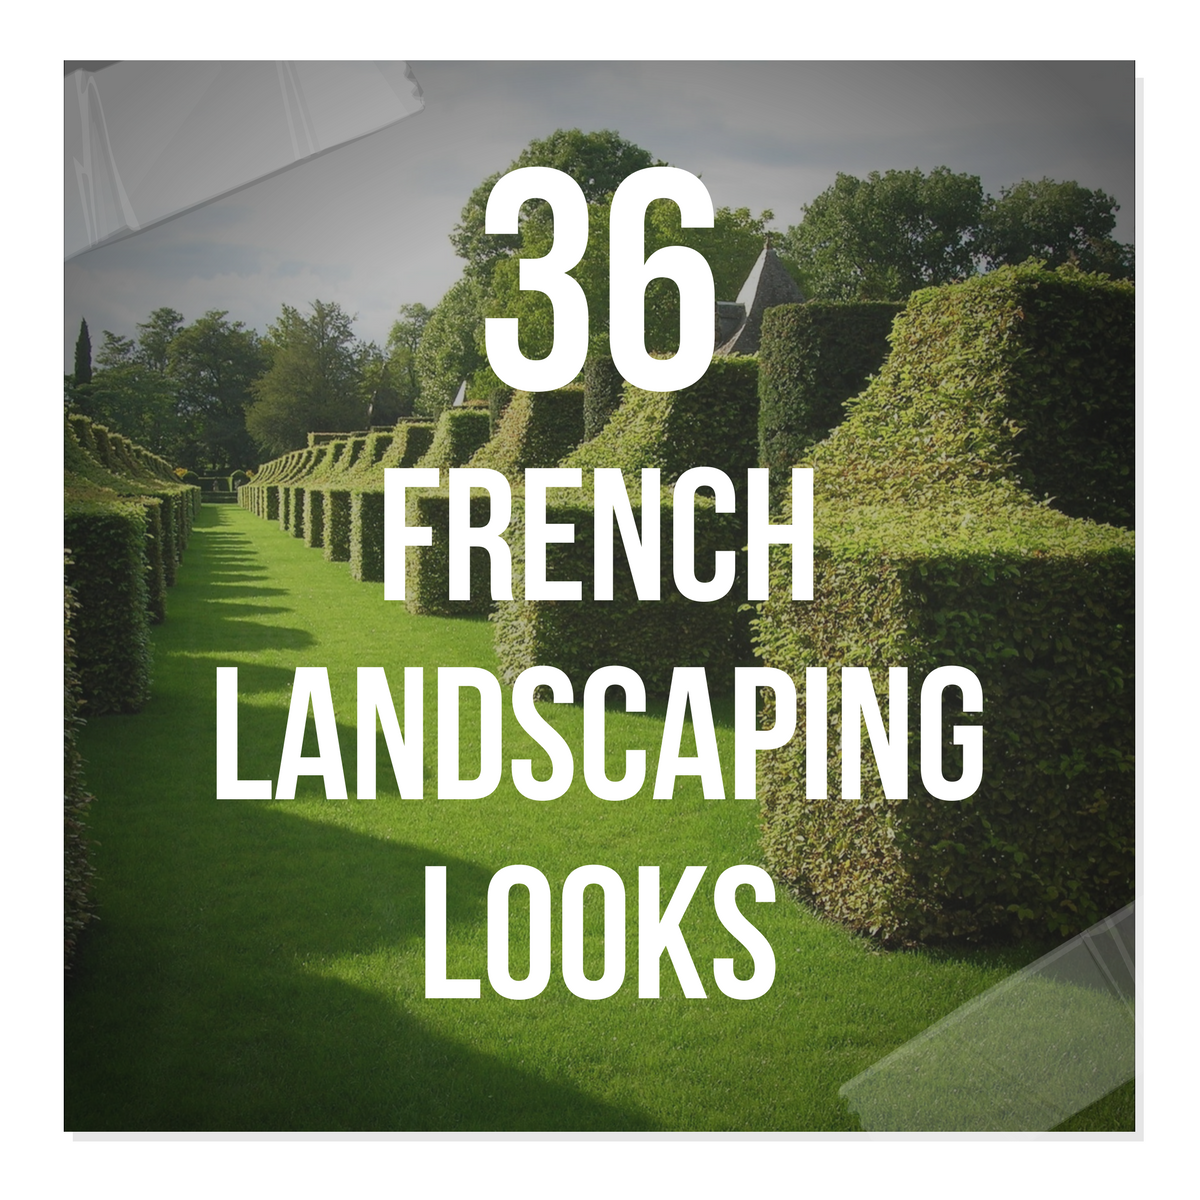 36 French Landscaping Looks For Your Back Yard